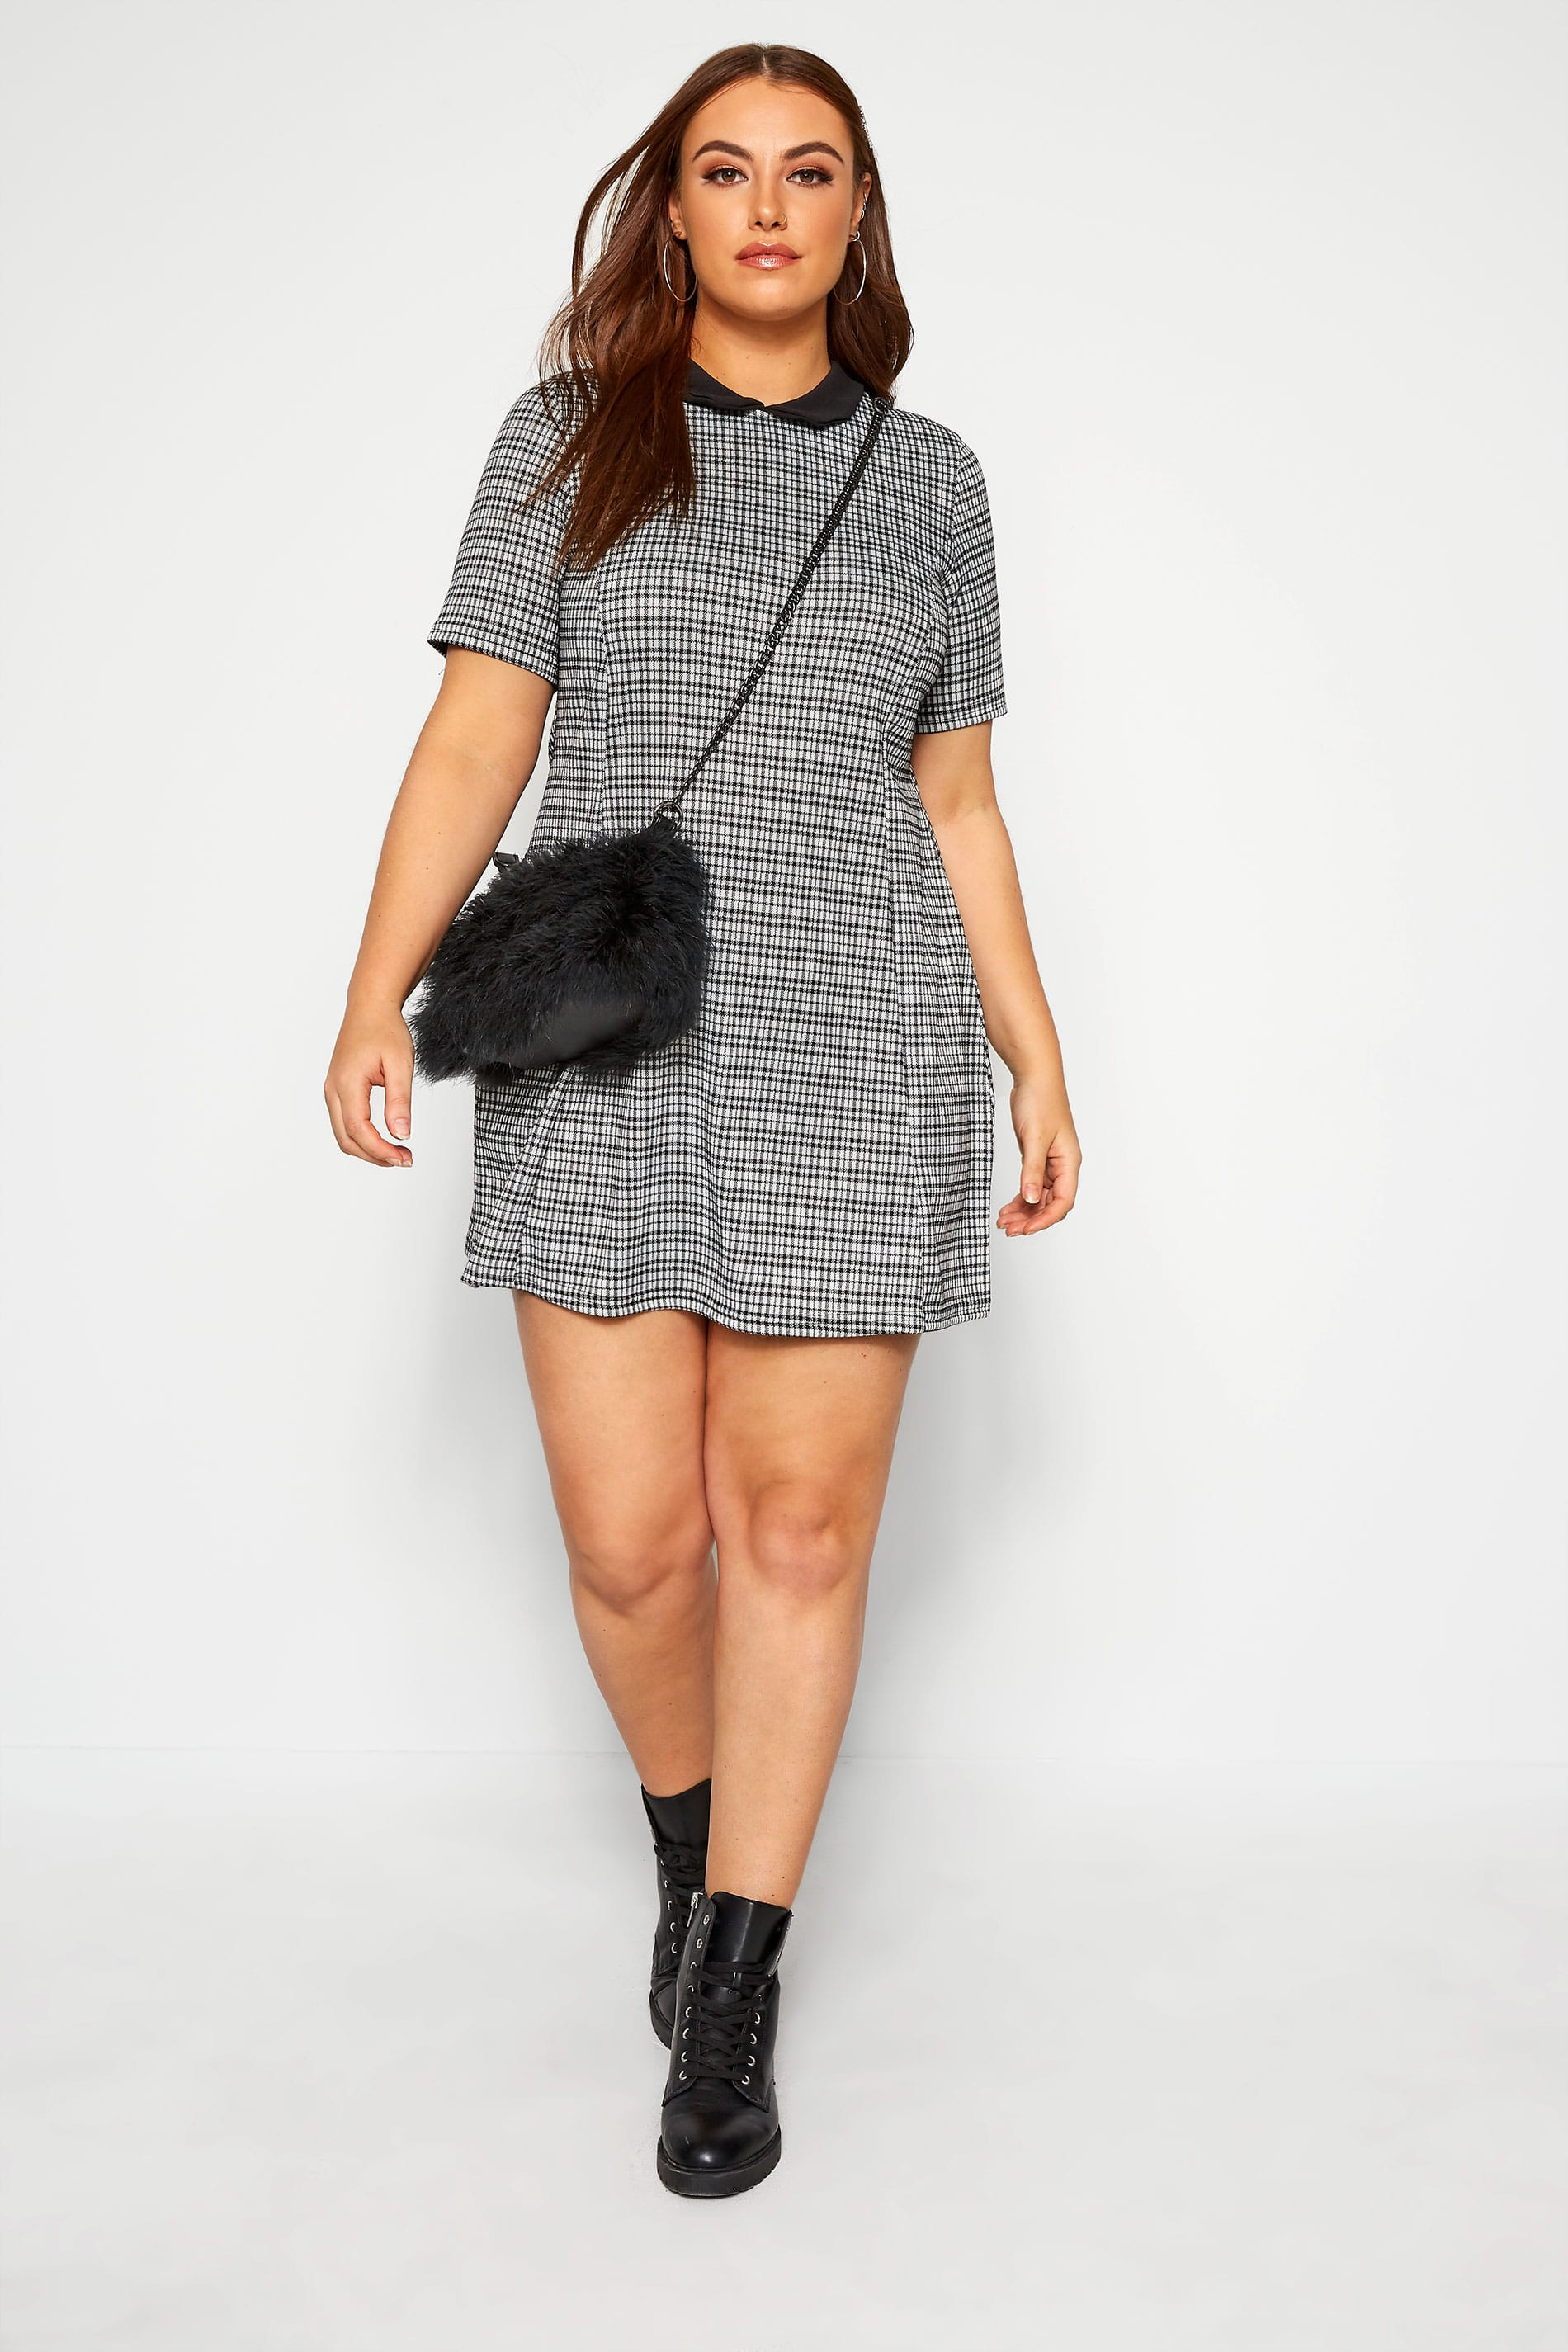 LIMITED COLLECTION Black & White Check Dress